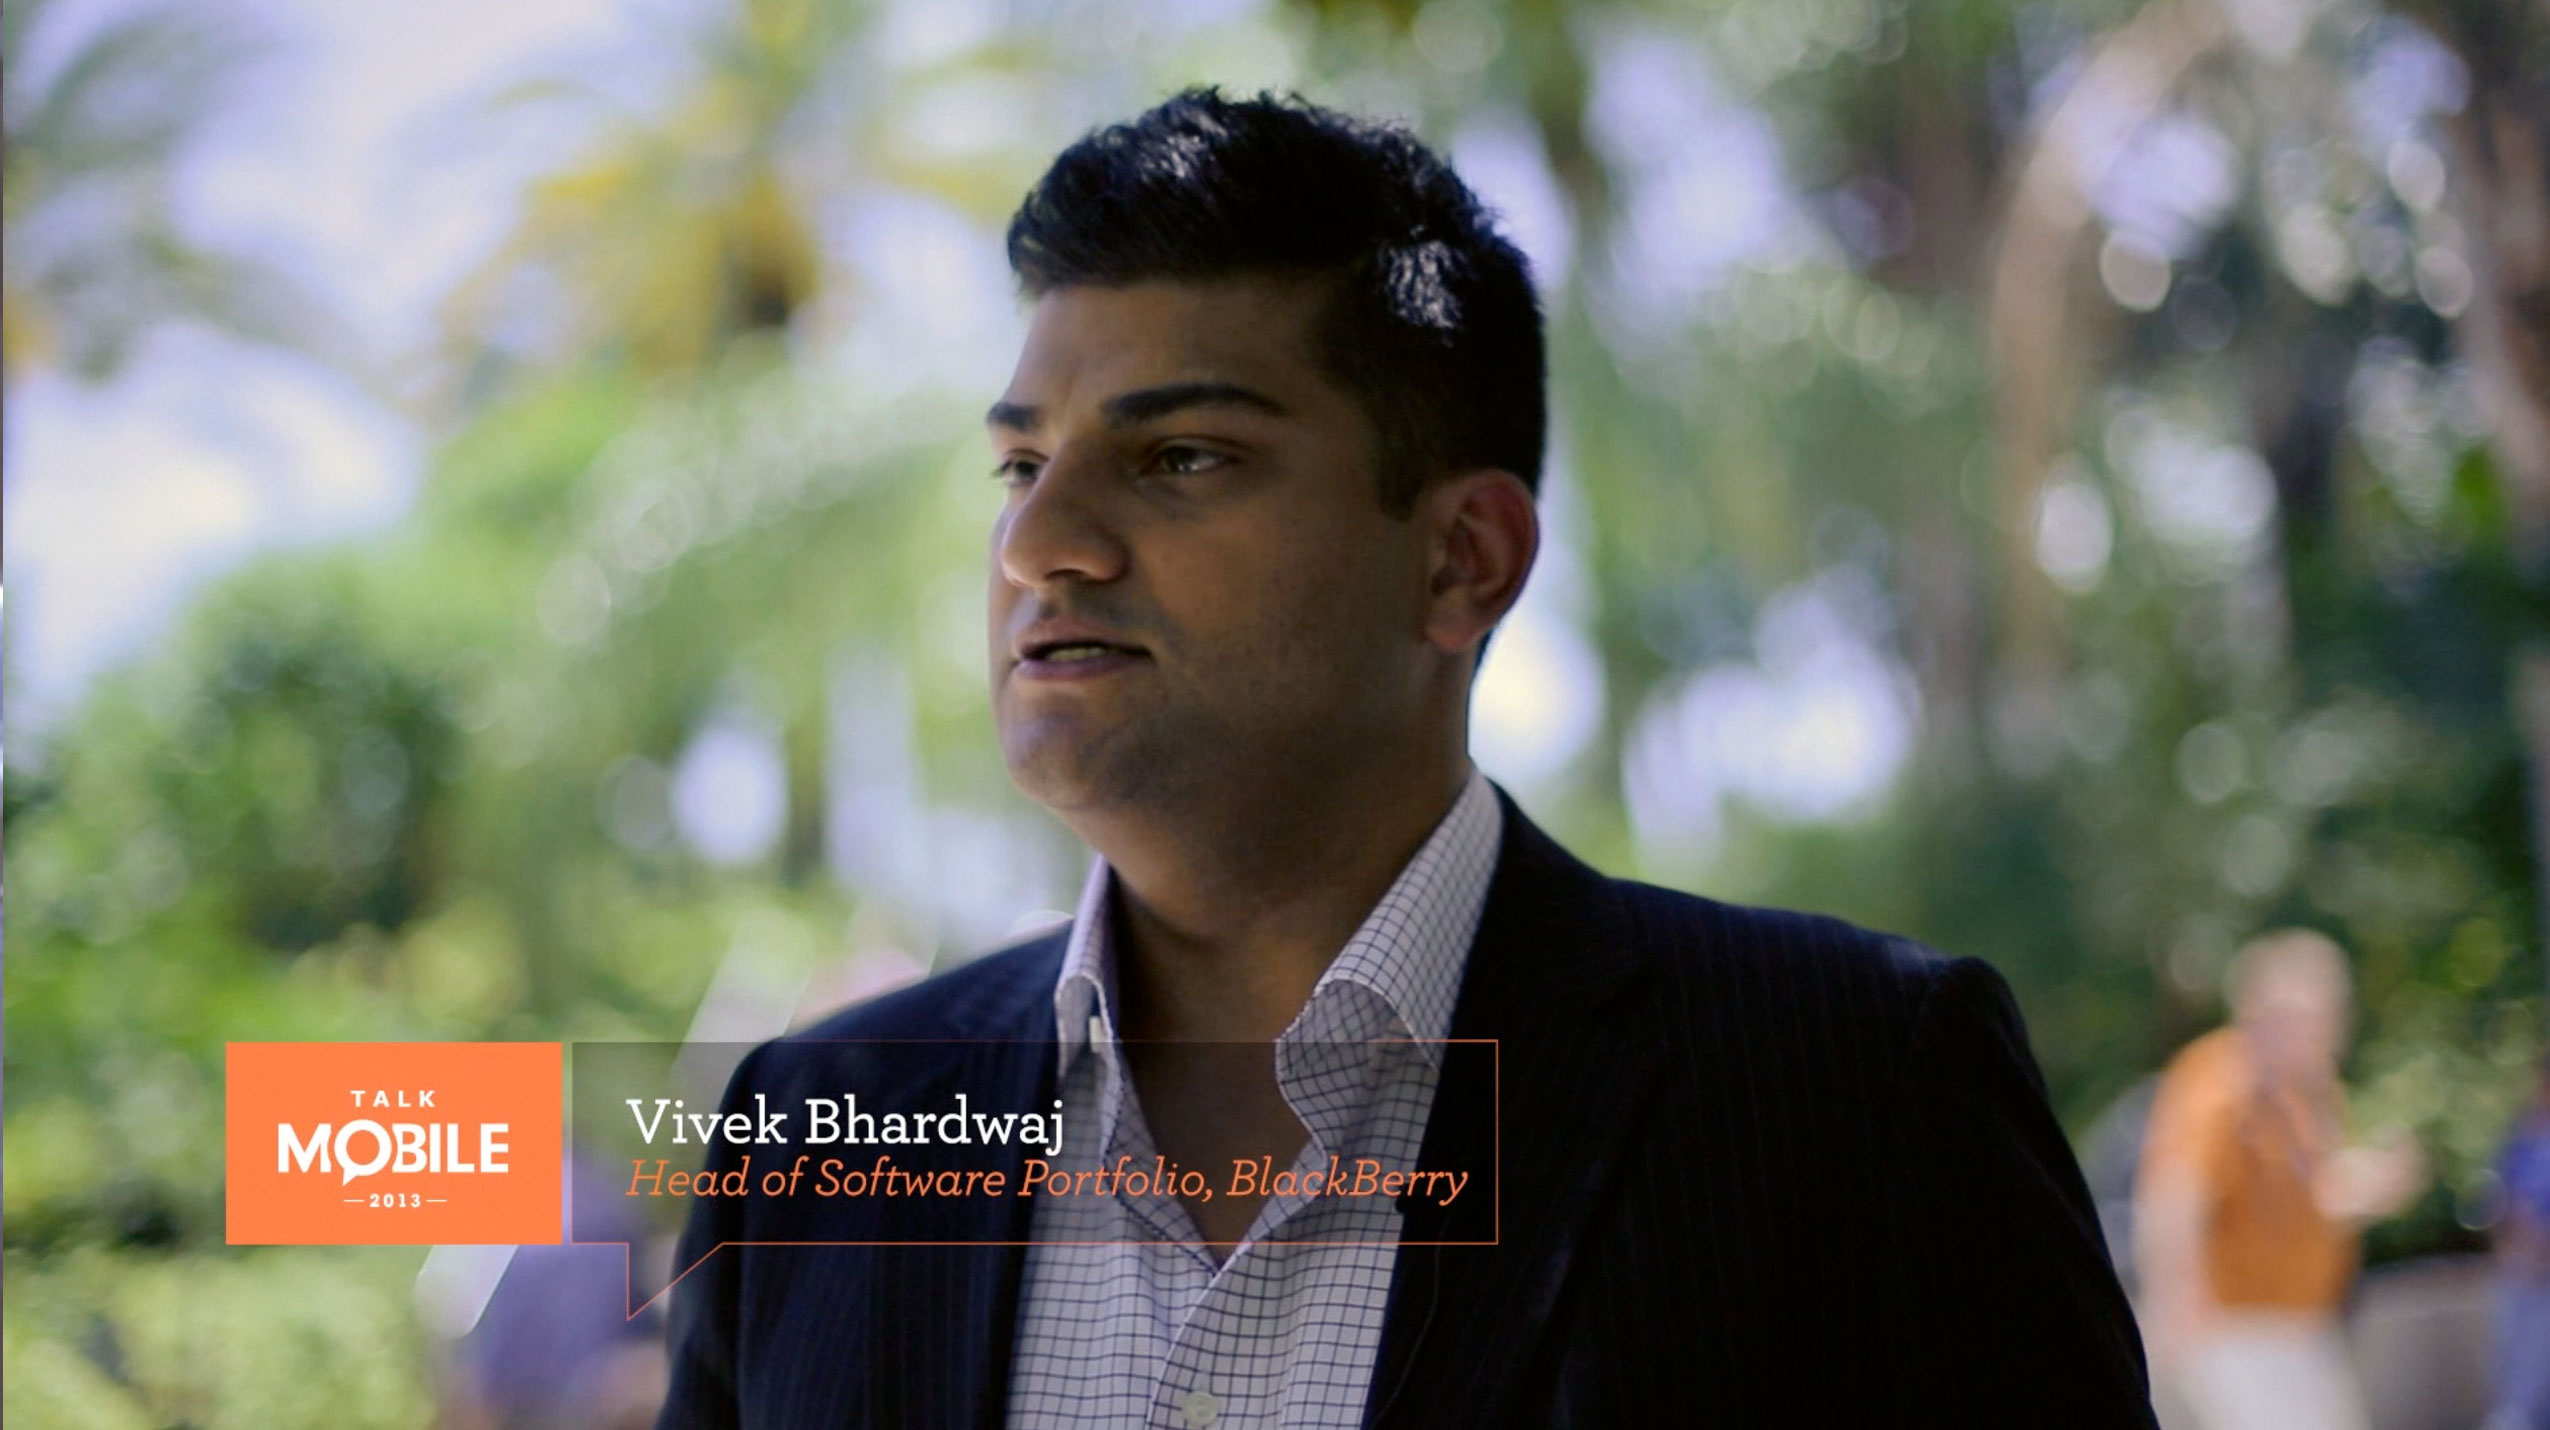 Watch Vivek Bhardwaj talk about smart mobile computing end-points of the future